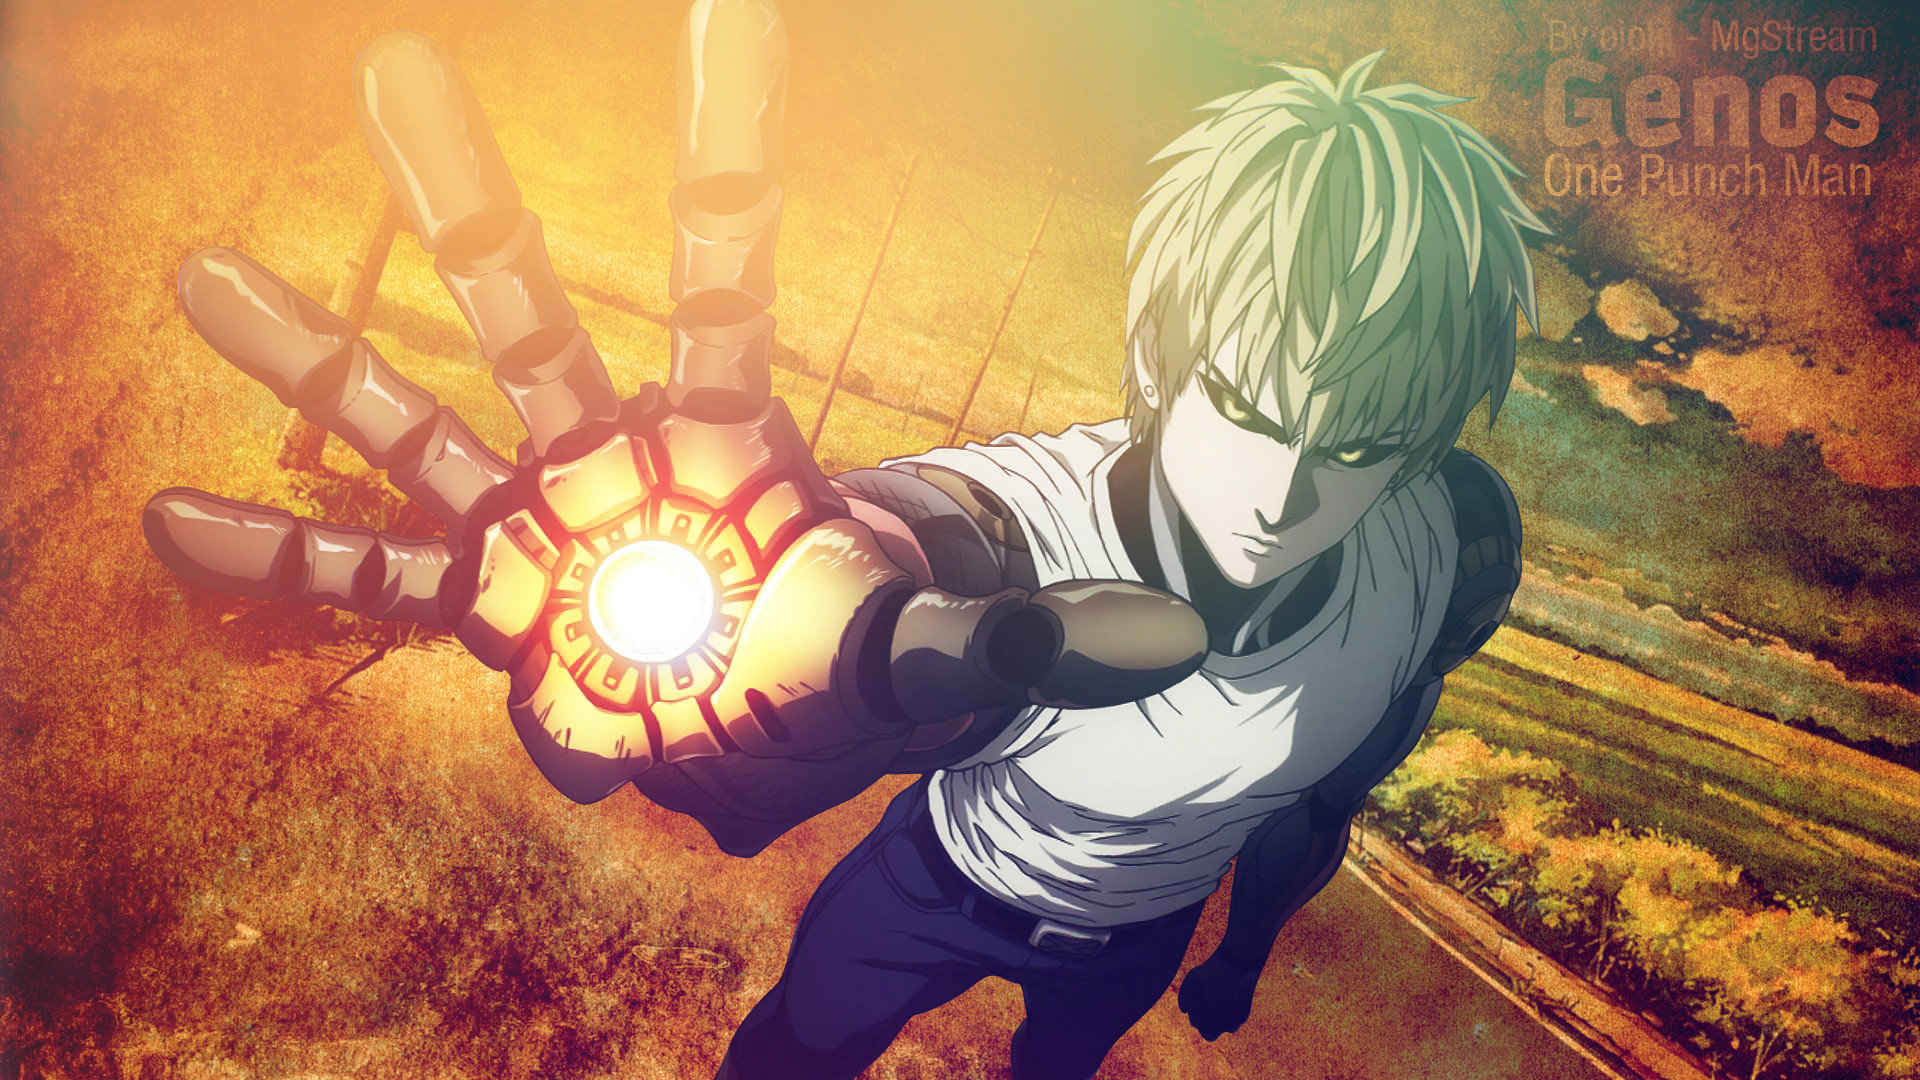 Download hd 1080p Genos (One-Punch Man) computer wallpaper ID:345435 for free